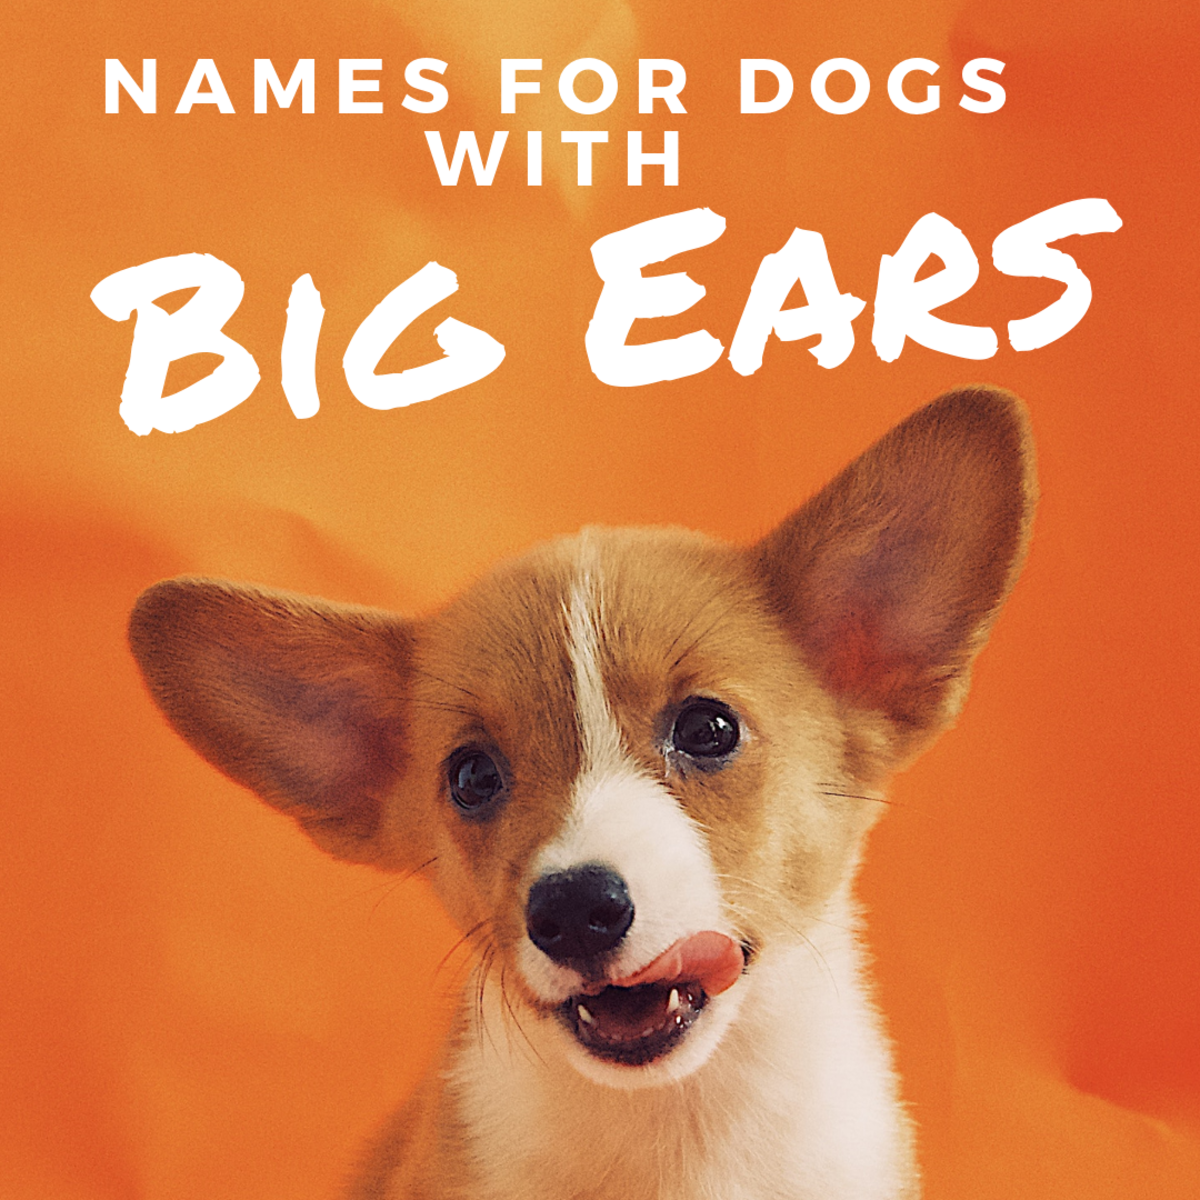 44 Names for Dogs With Big Ears